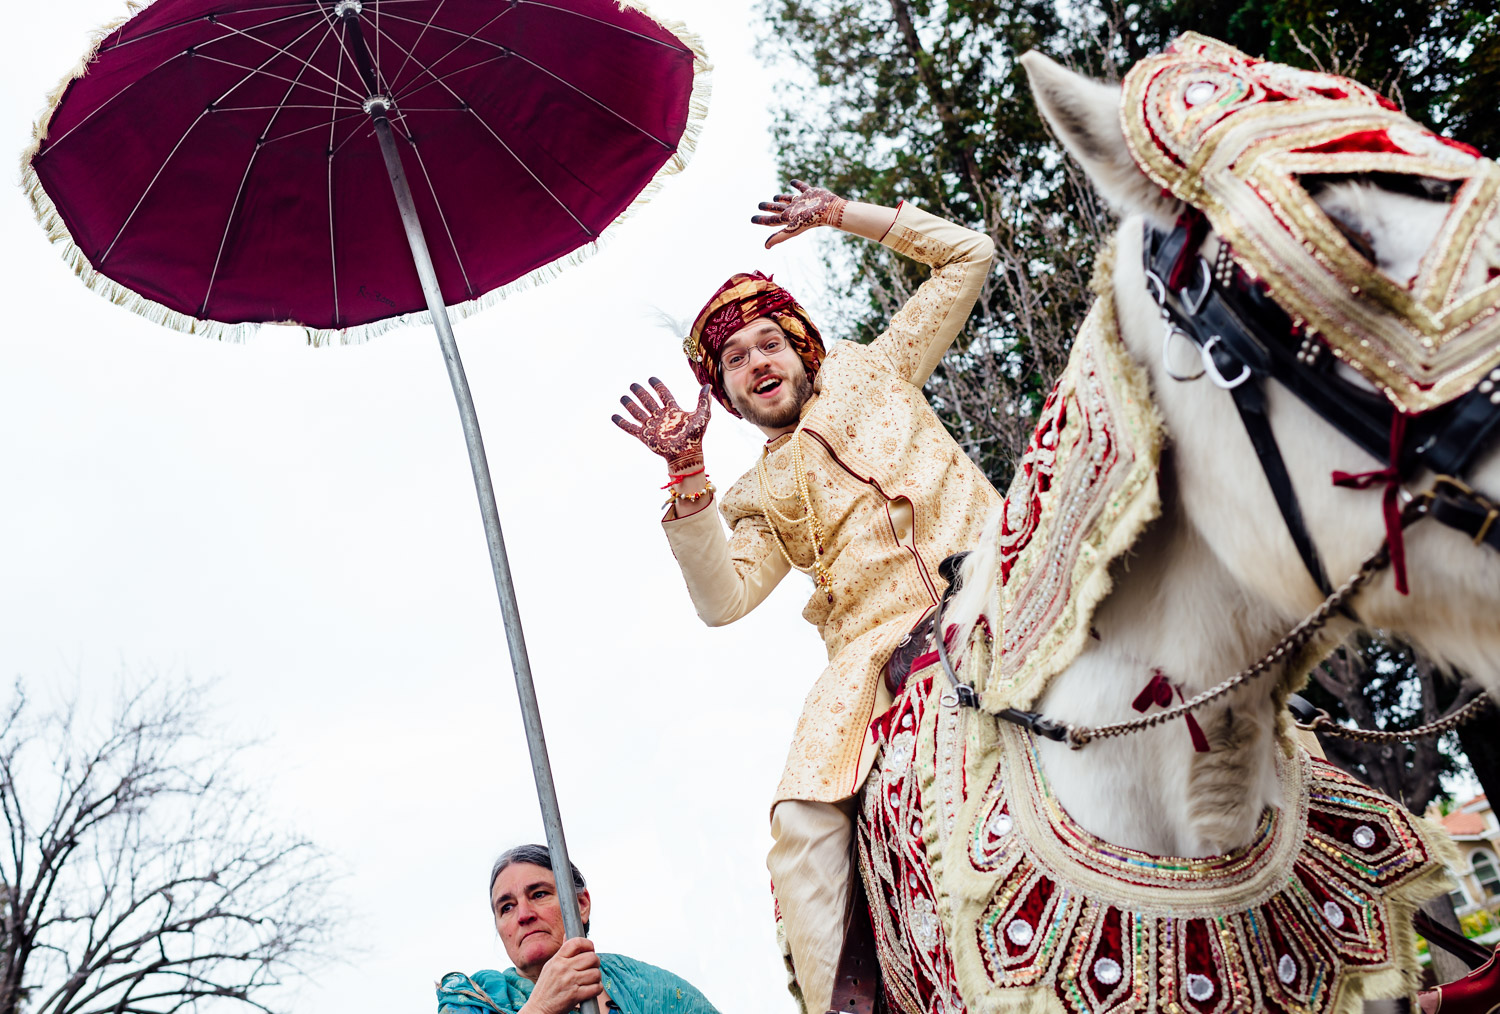 San Francisco Bay area Indian wedding baraat